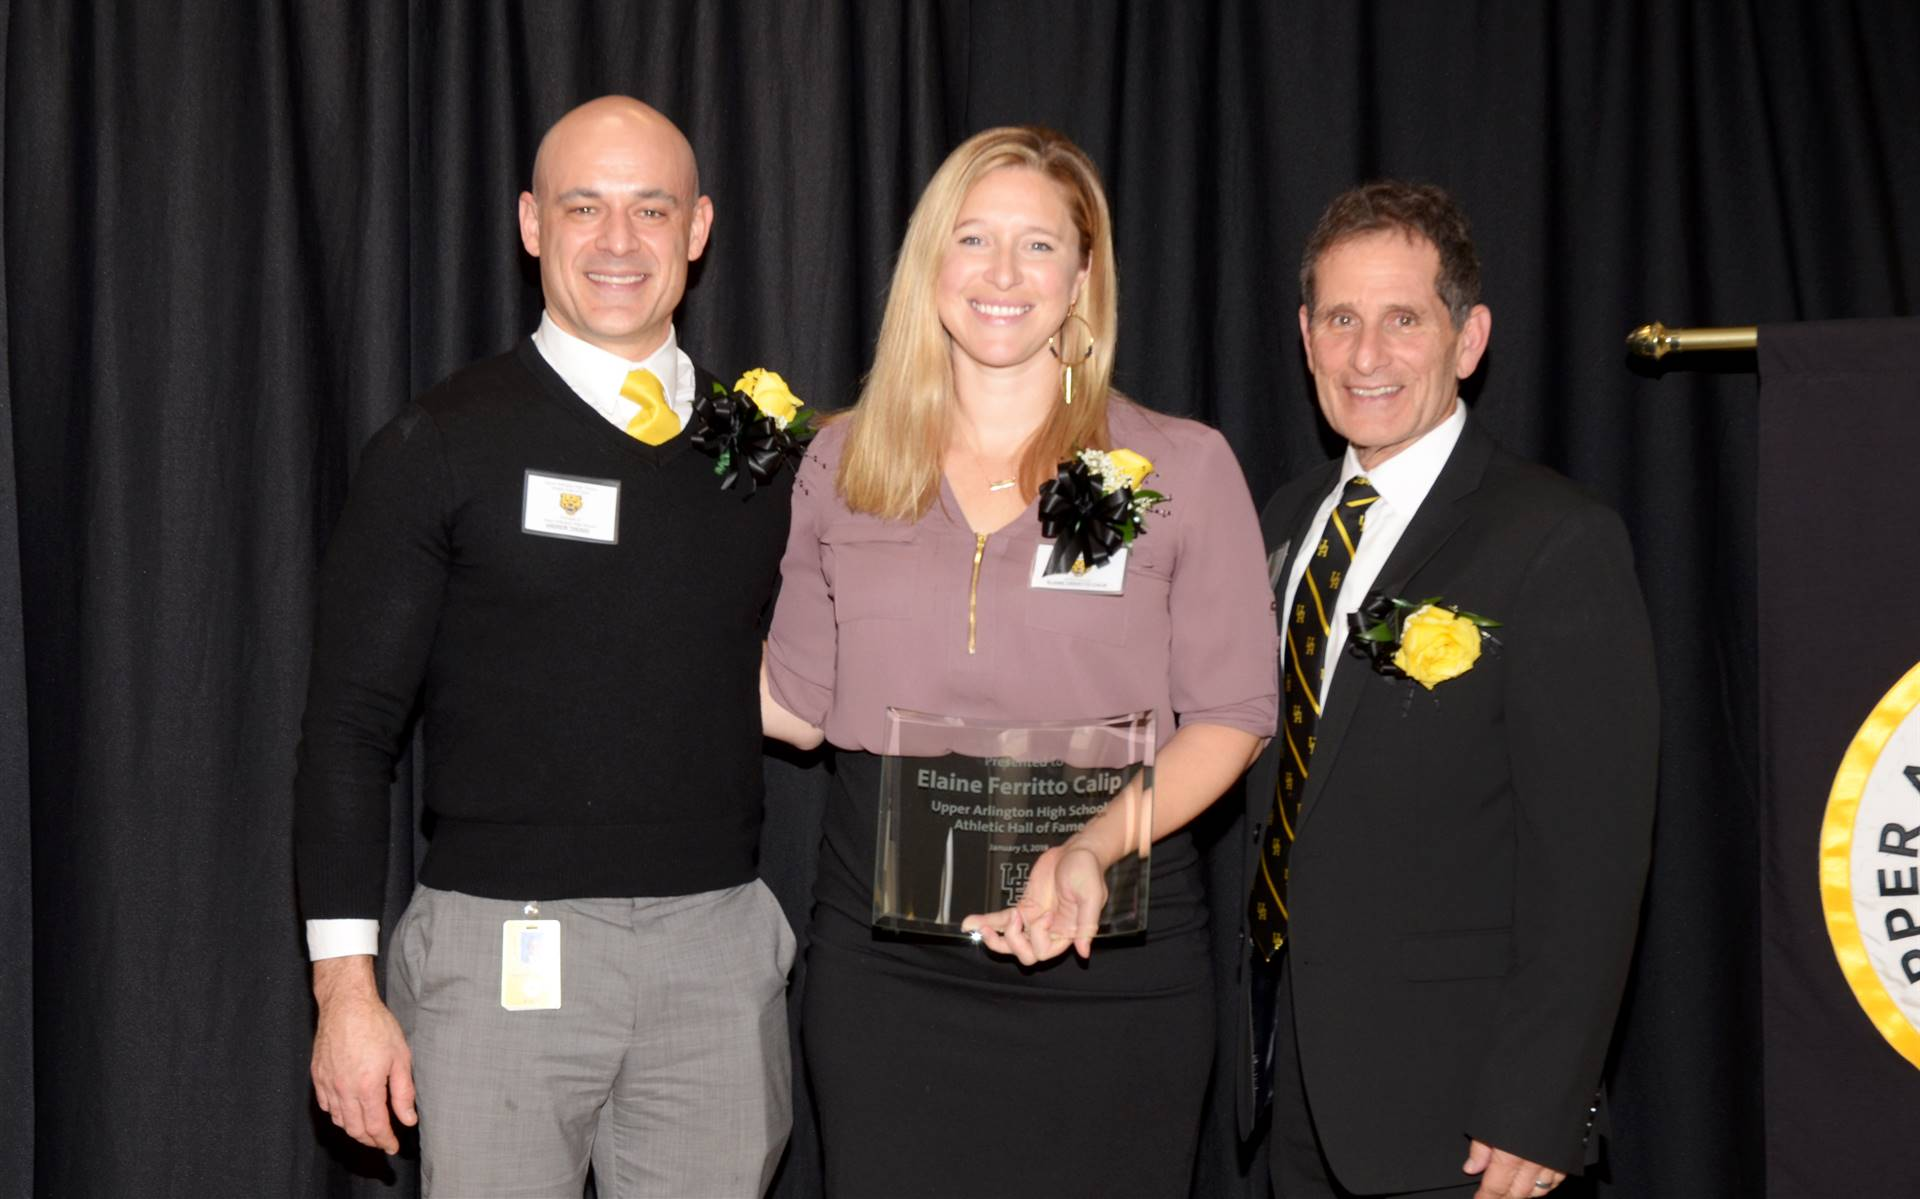 Inductee Elaine Ferritto Calip with Principal Andrew Theado and Athletic Director Tony Pusateri